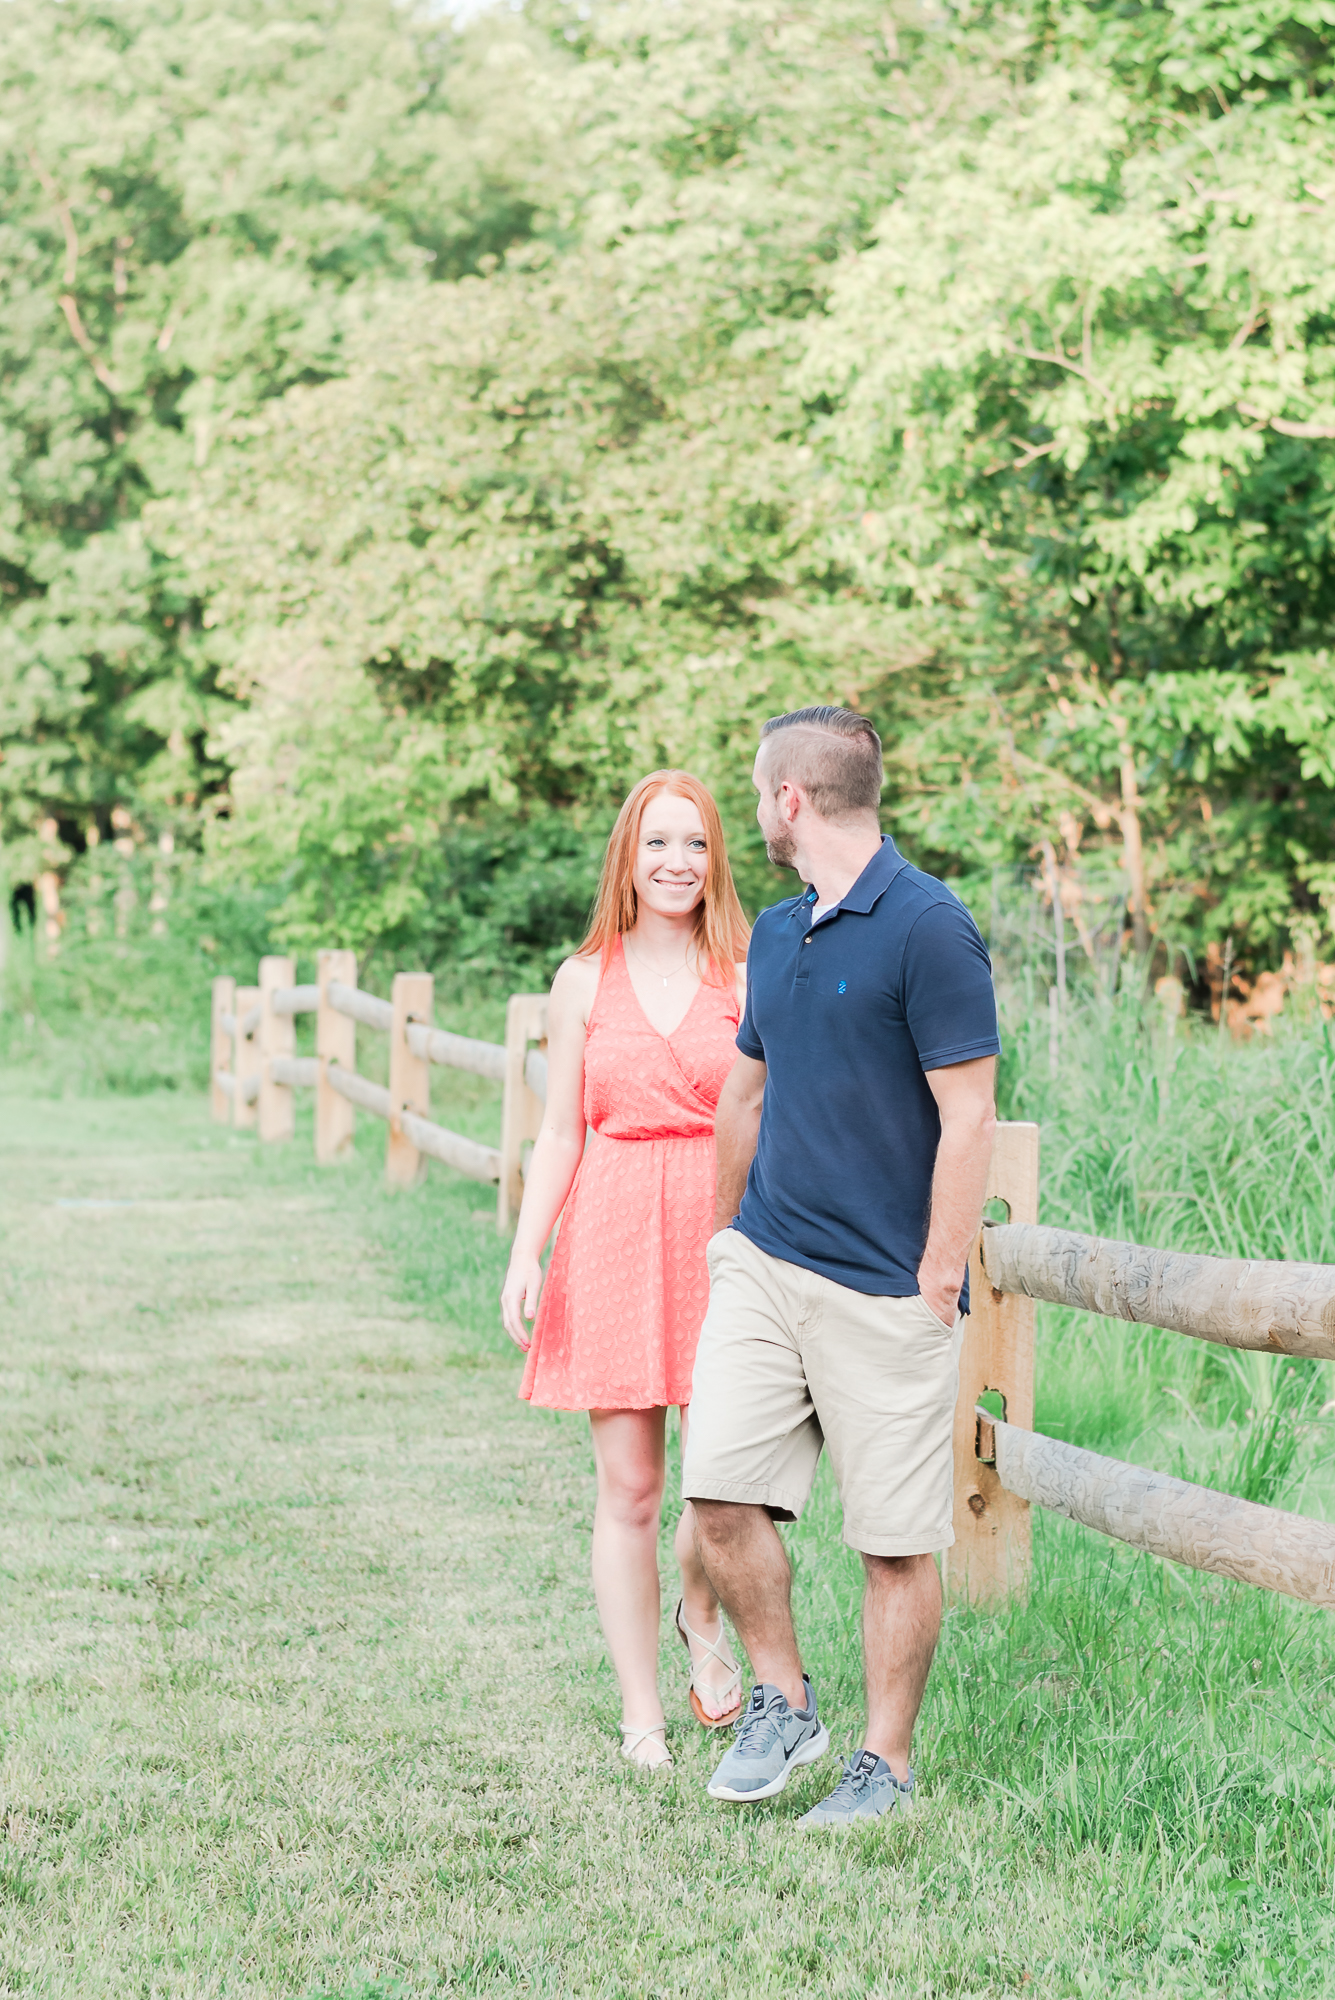 AB Favorites_Katy+Brian_Engagement Session_Brecksville Reservation_Brecksville_Ohio-4.jpg